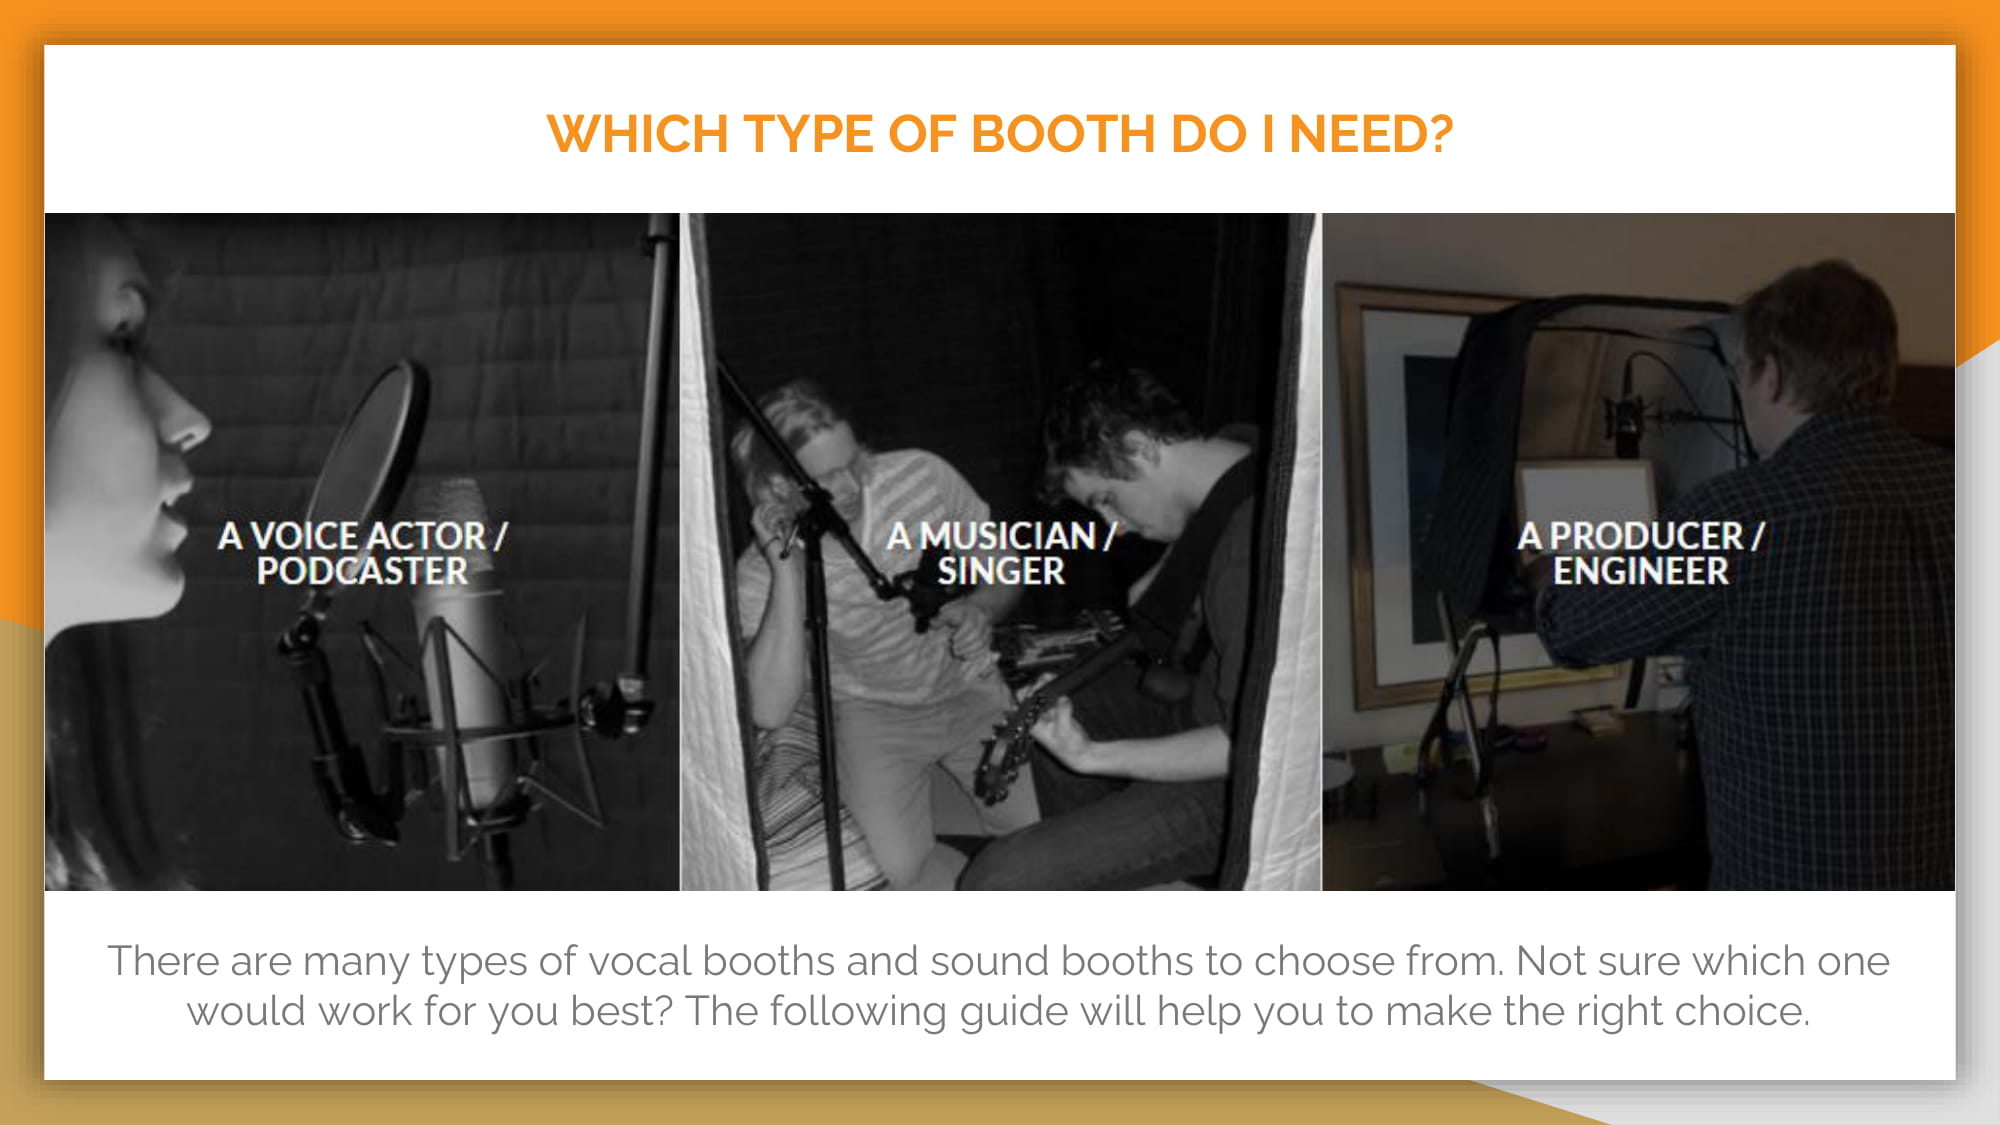 WHICH TYPE OF BOOTH DO I NEED